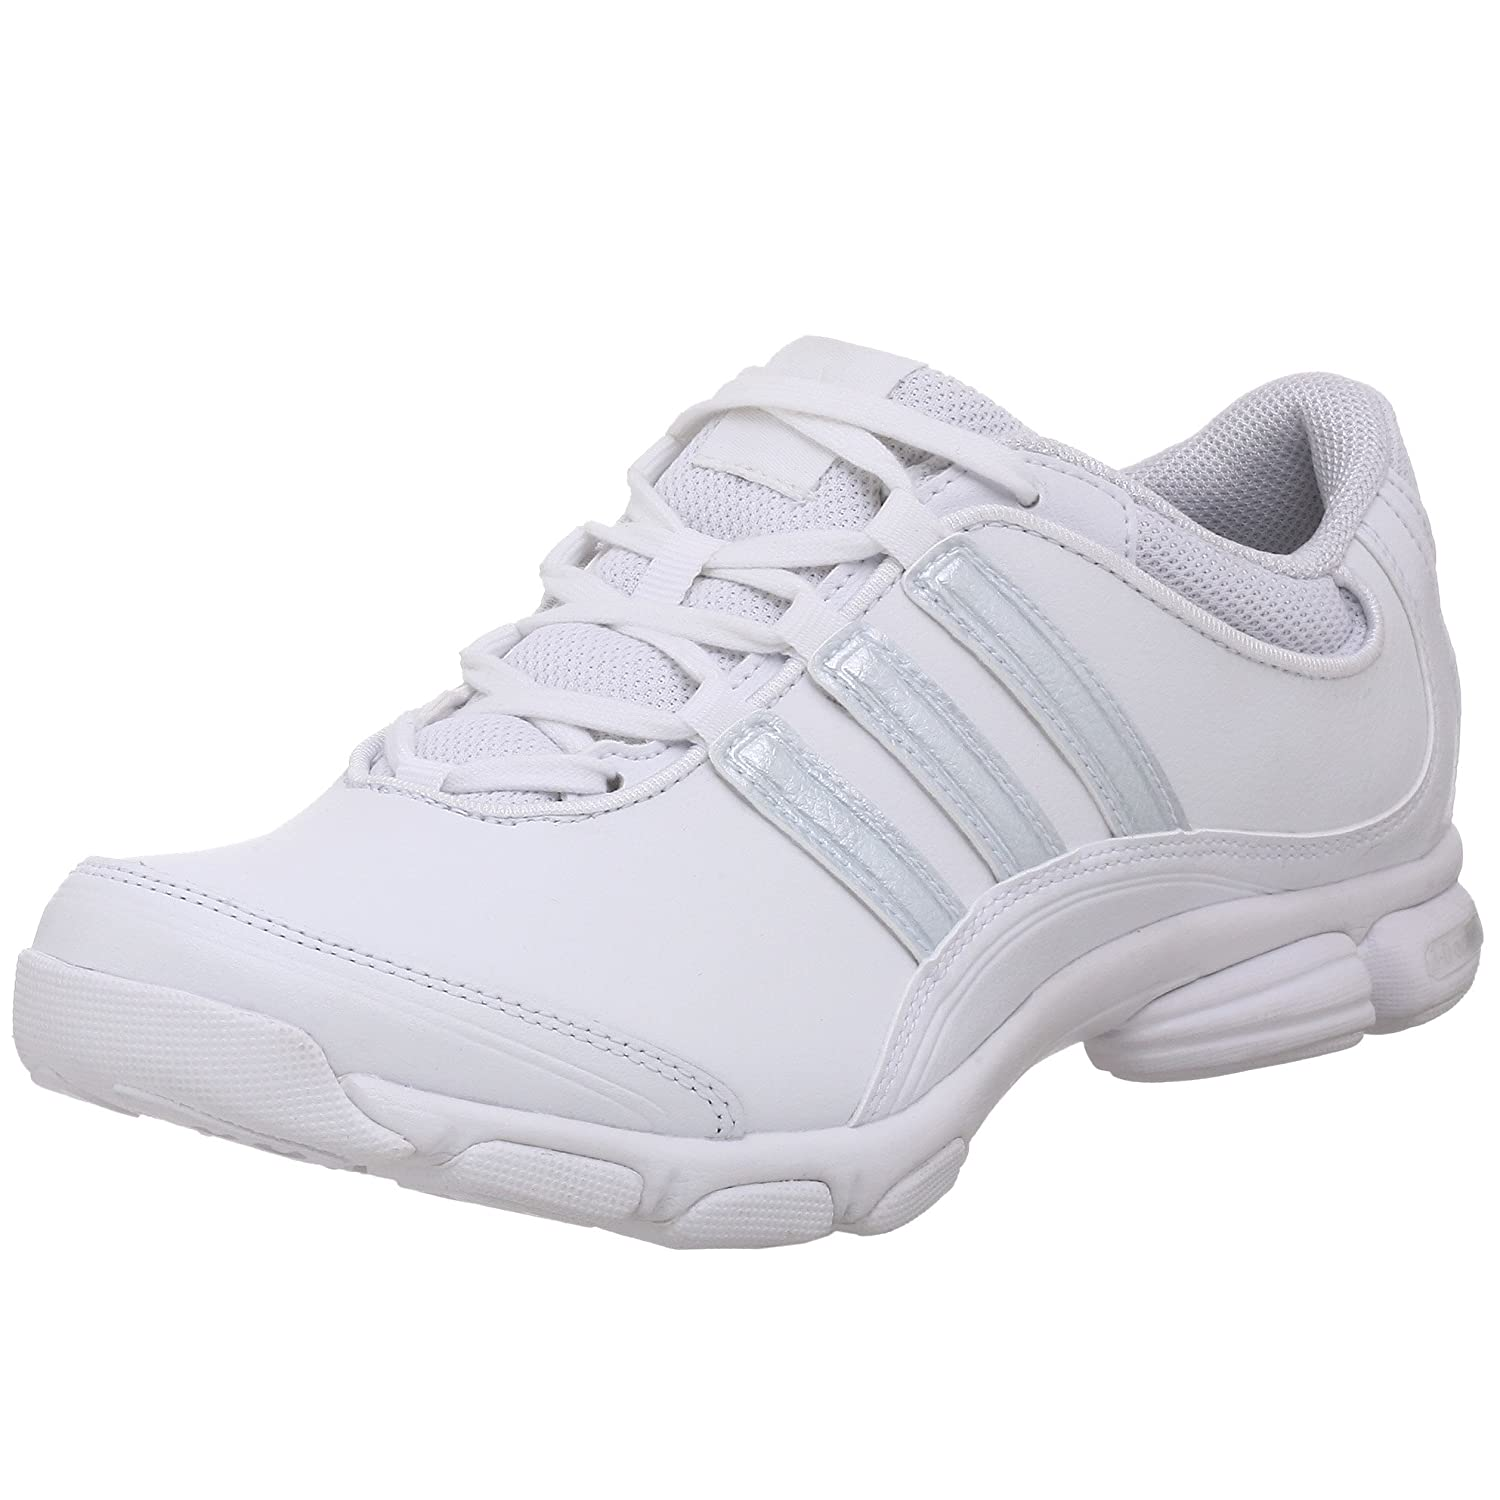 adidas Women's Cheer Sport Cross Trainer Shoe